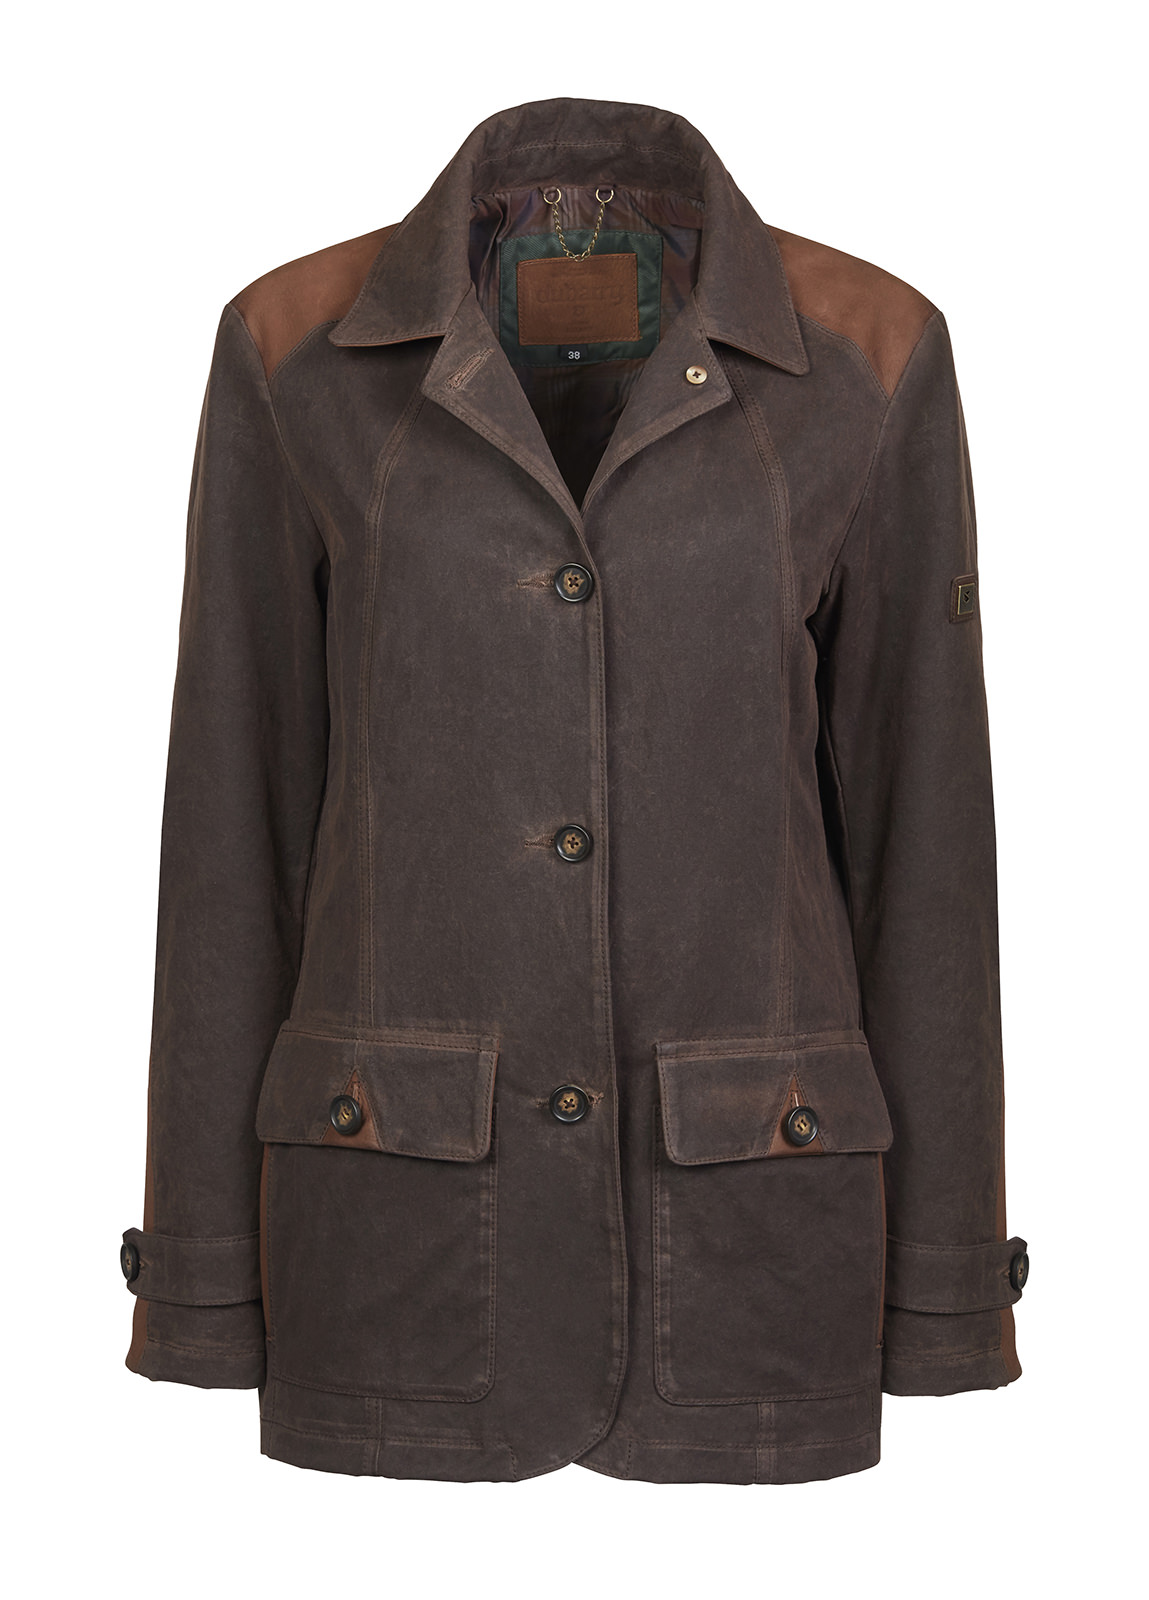 Dubarry_ Ballyliffin Country Jacket - Old Rum_Image_2